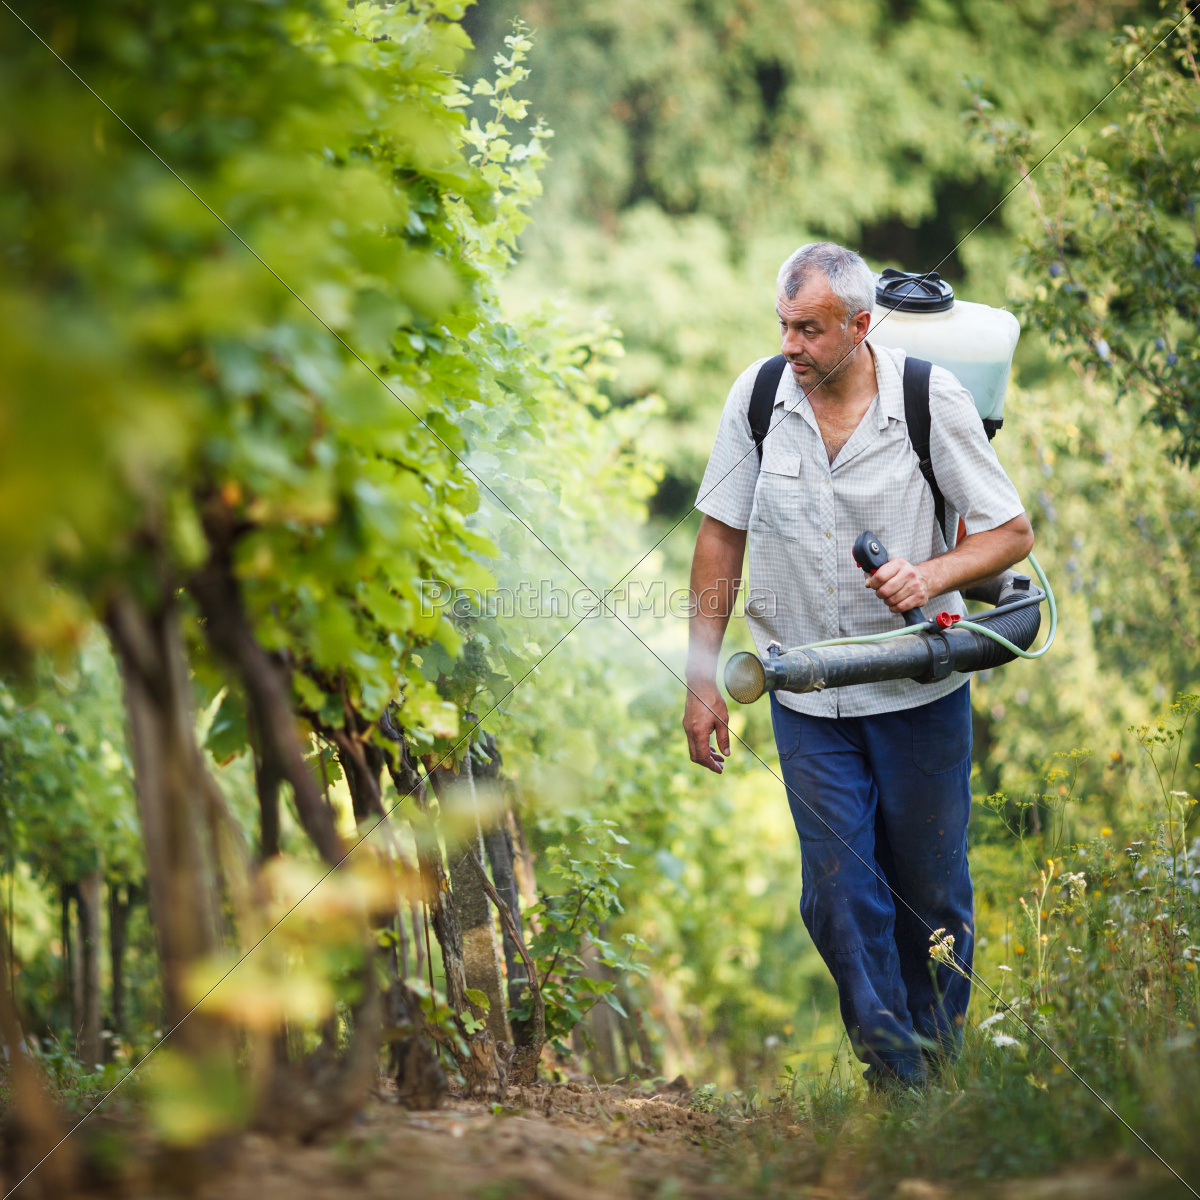 vintner, walking, in, his, vineyard, spraying - 10147309